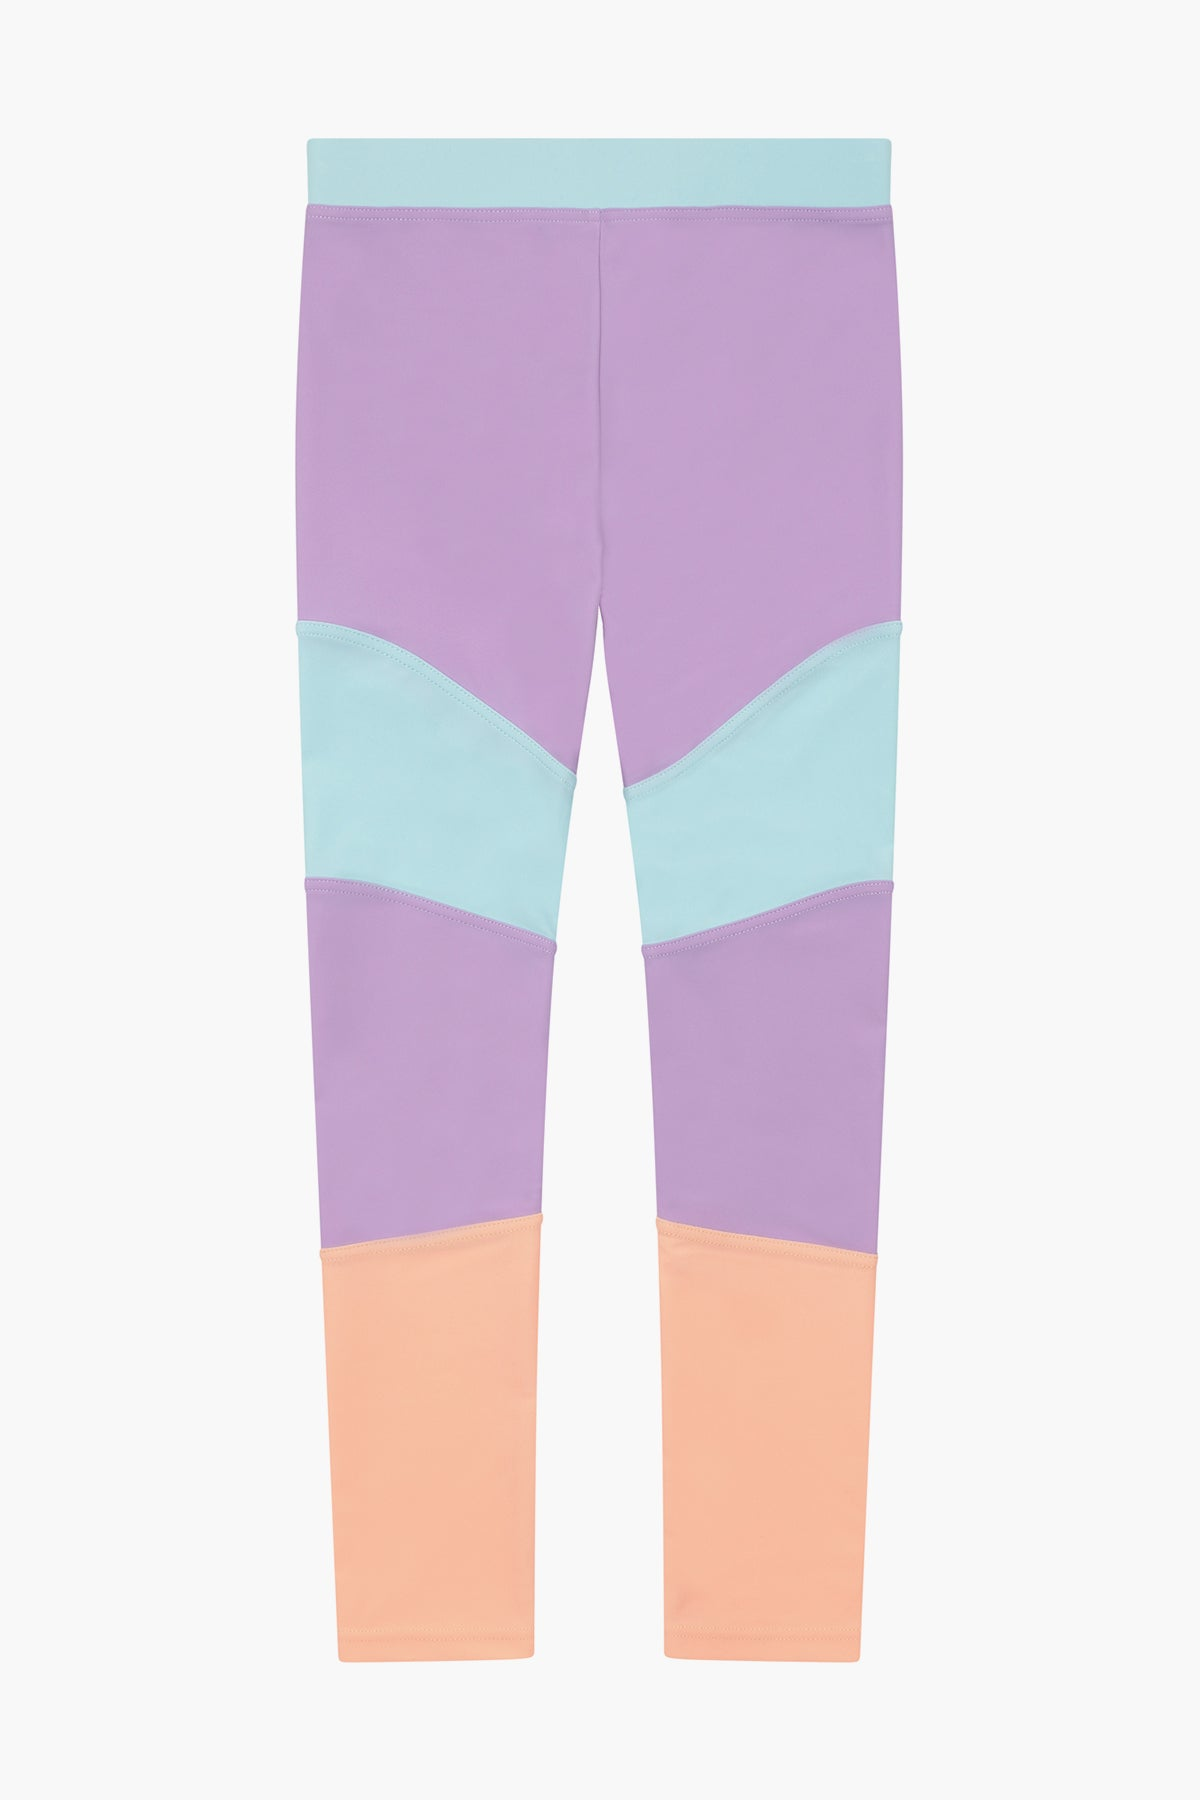 Soft Gallery Harmonia Girls Leggings